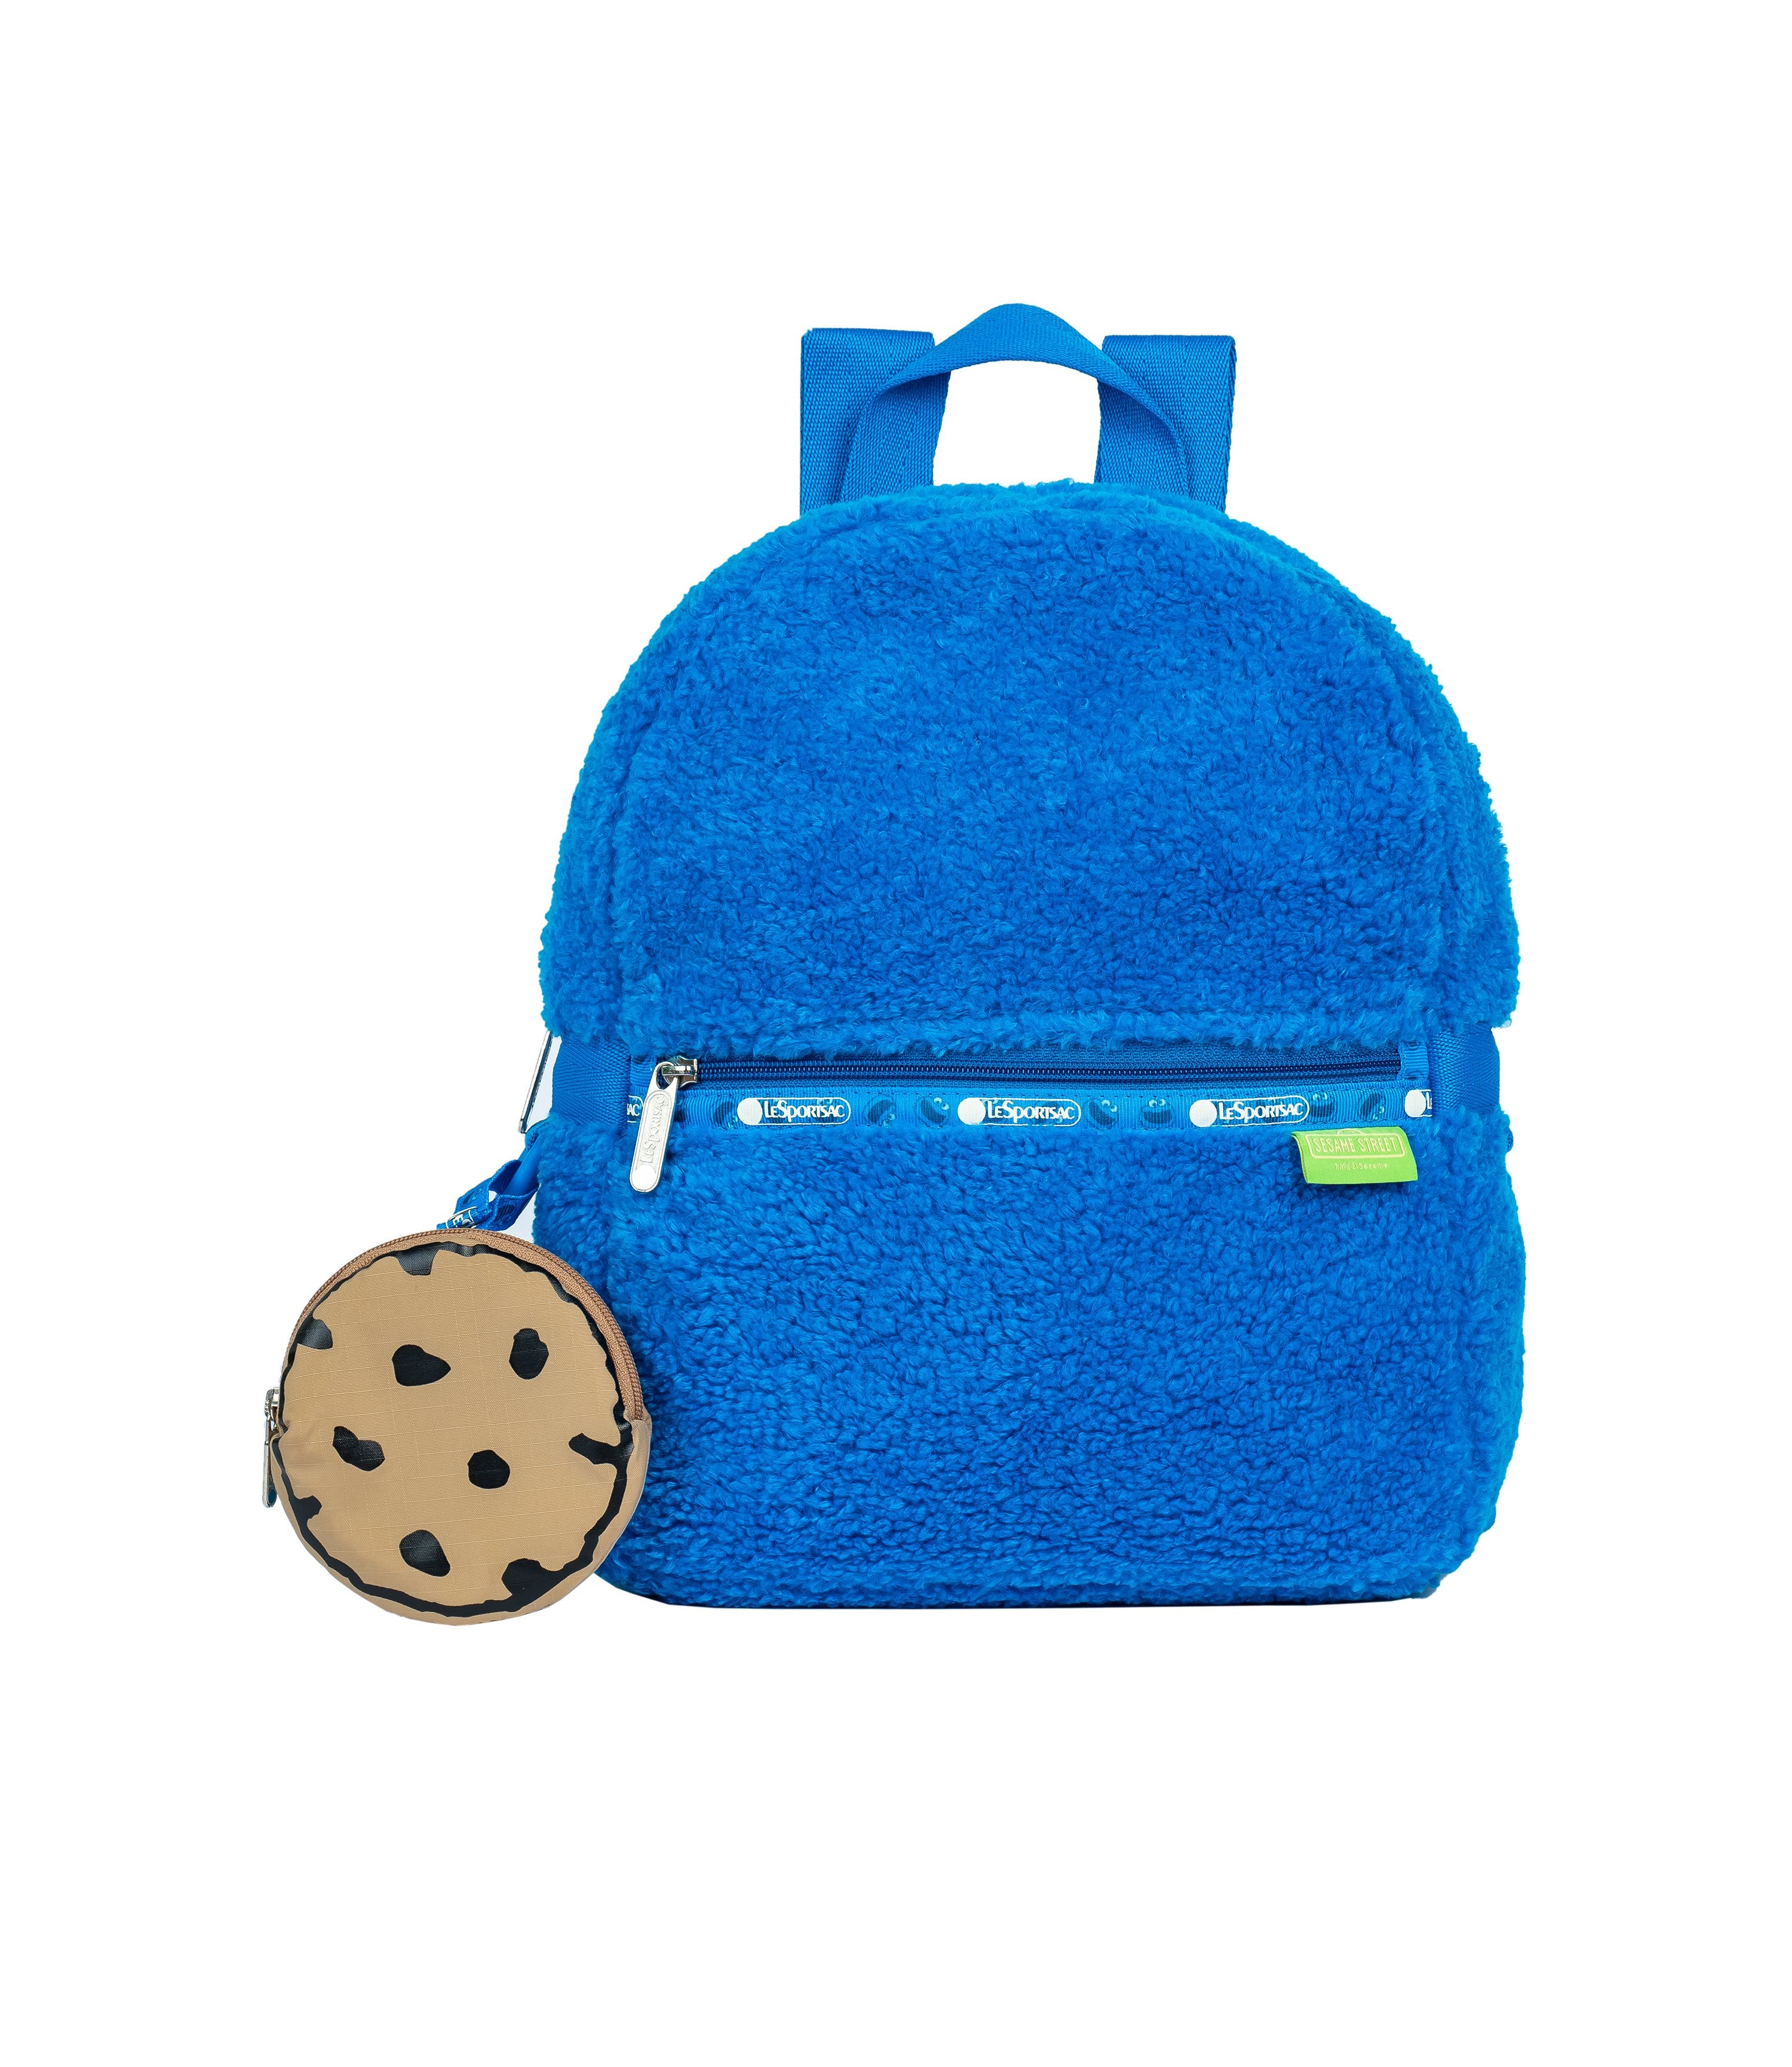 LeSportsac - Backpacks - Small Furry Carrier Backpack - Cookie Monster